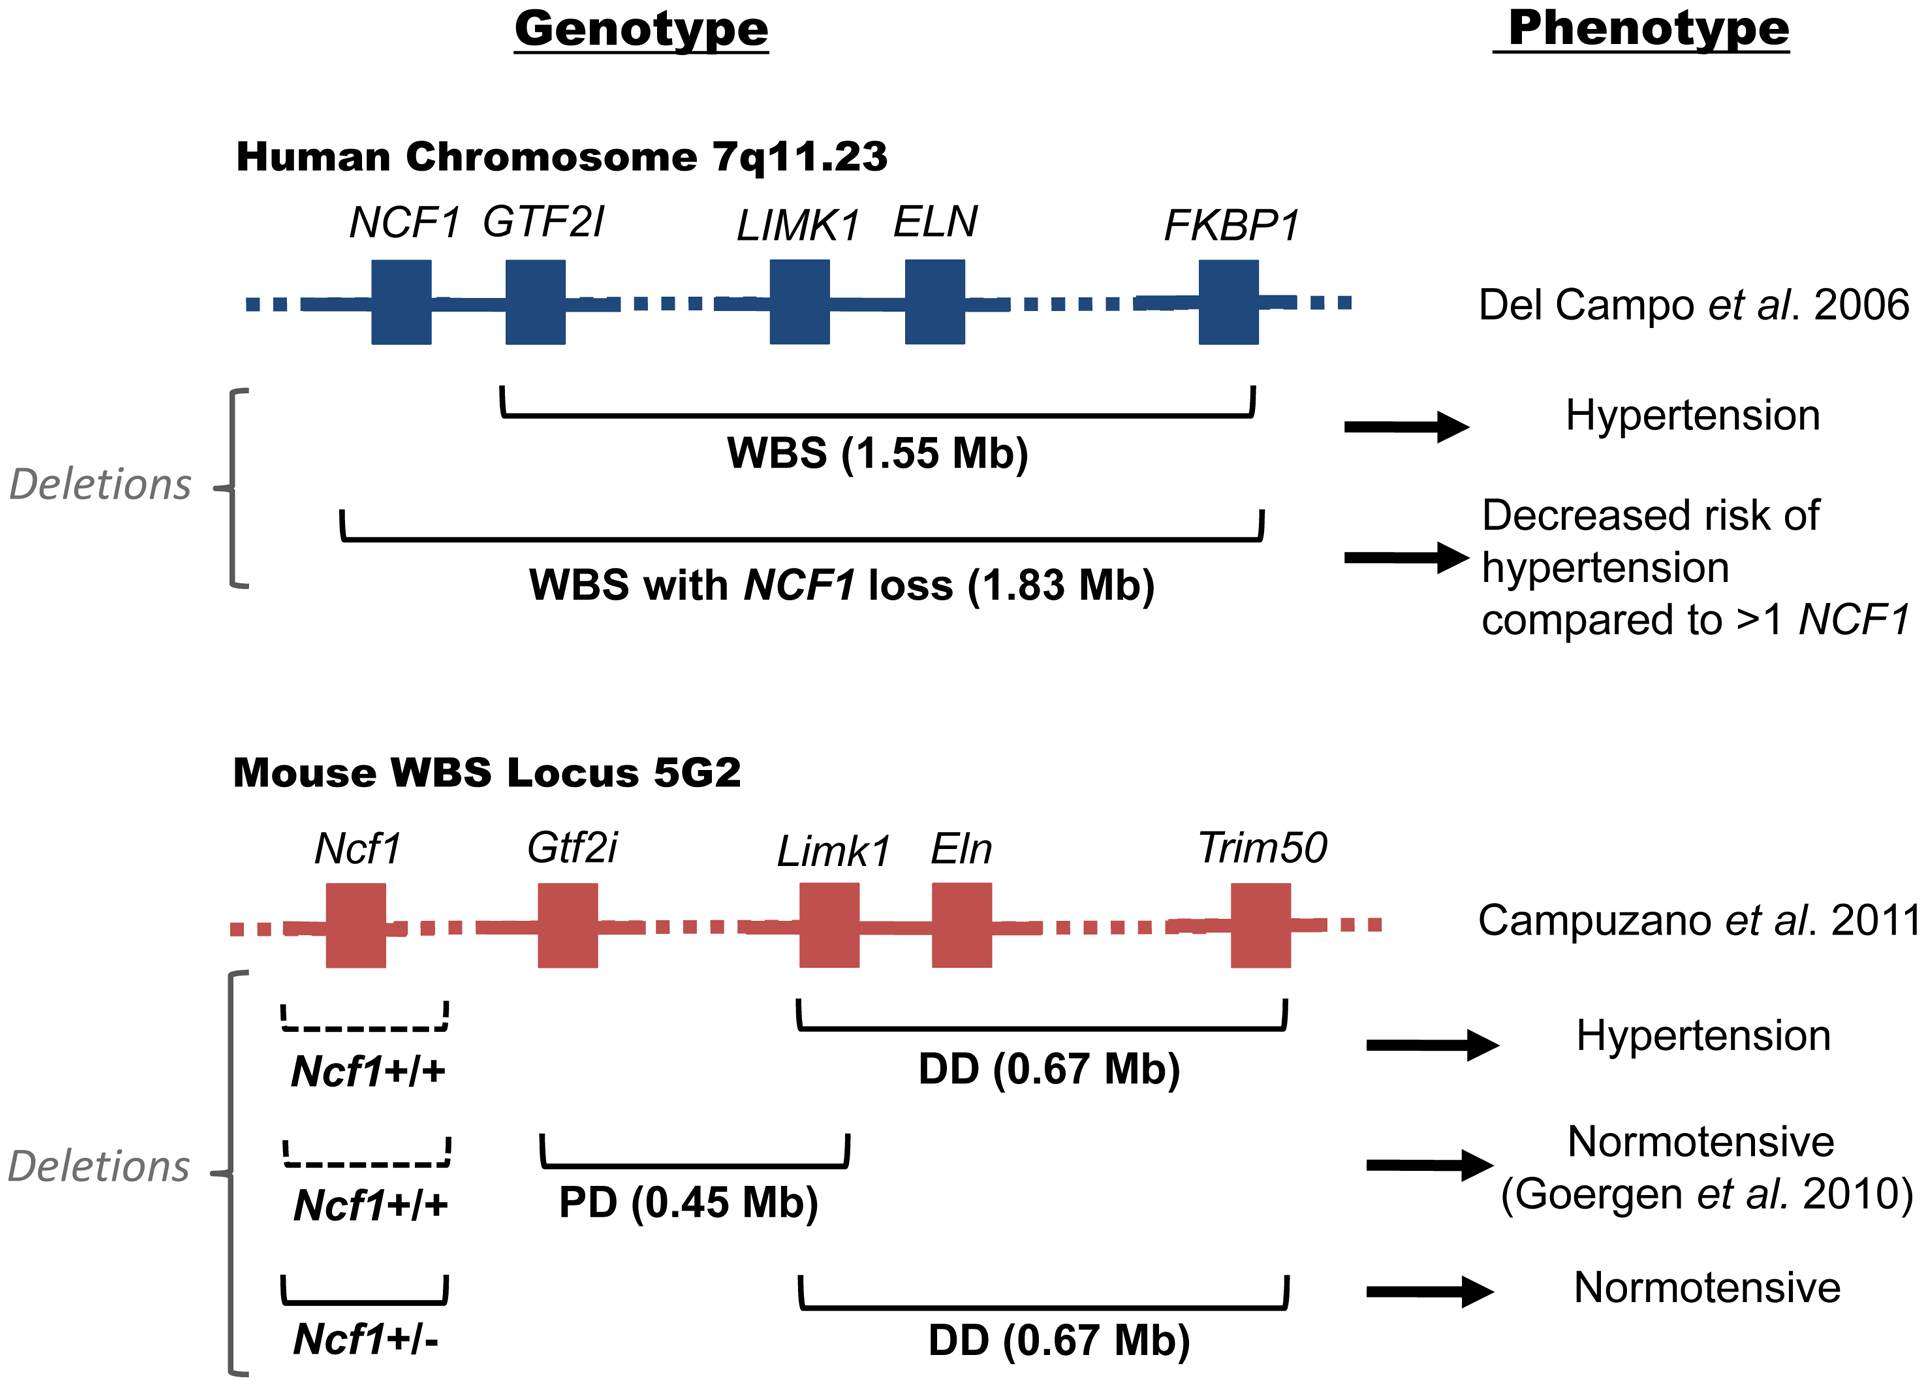 Genotype and phenotype of human and murine Williams-Beuren Syndrome.